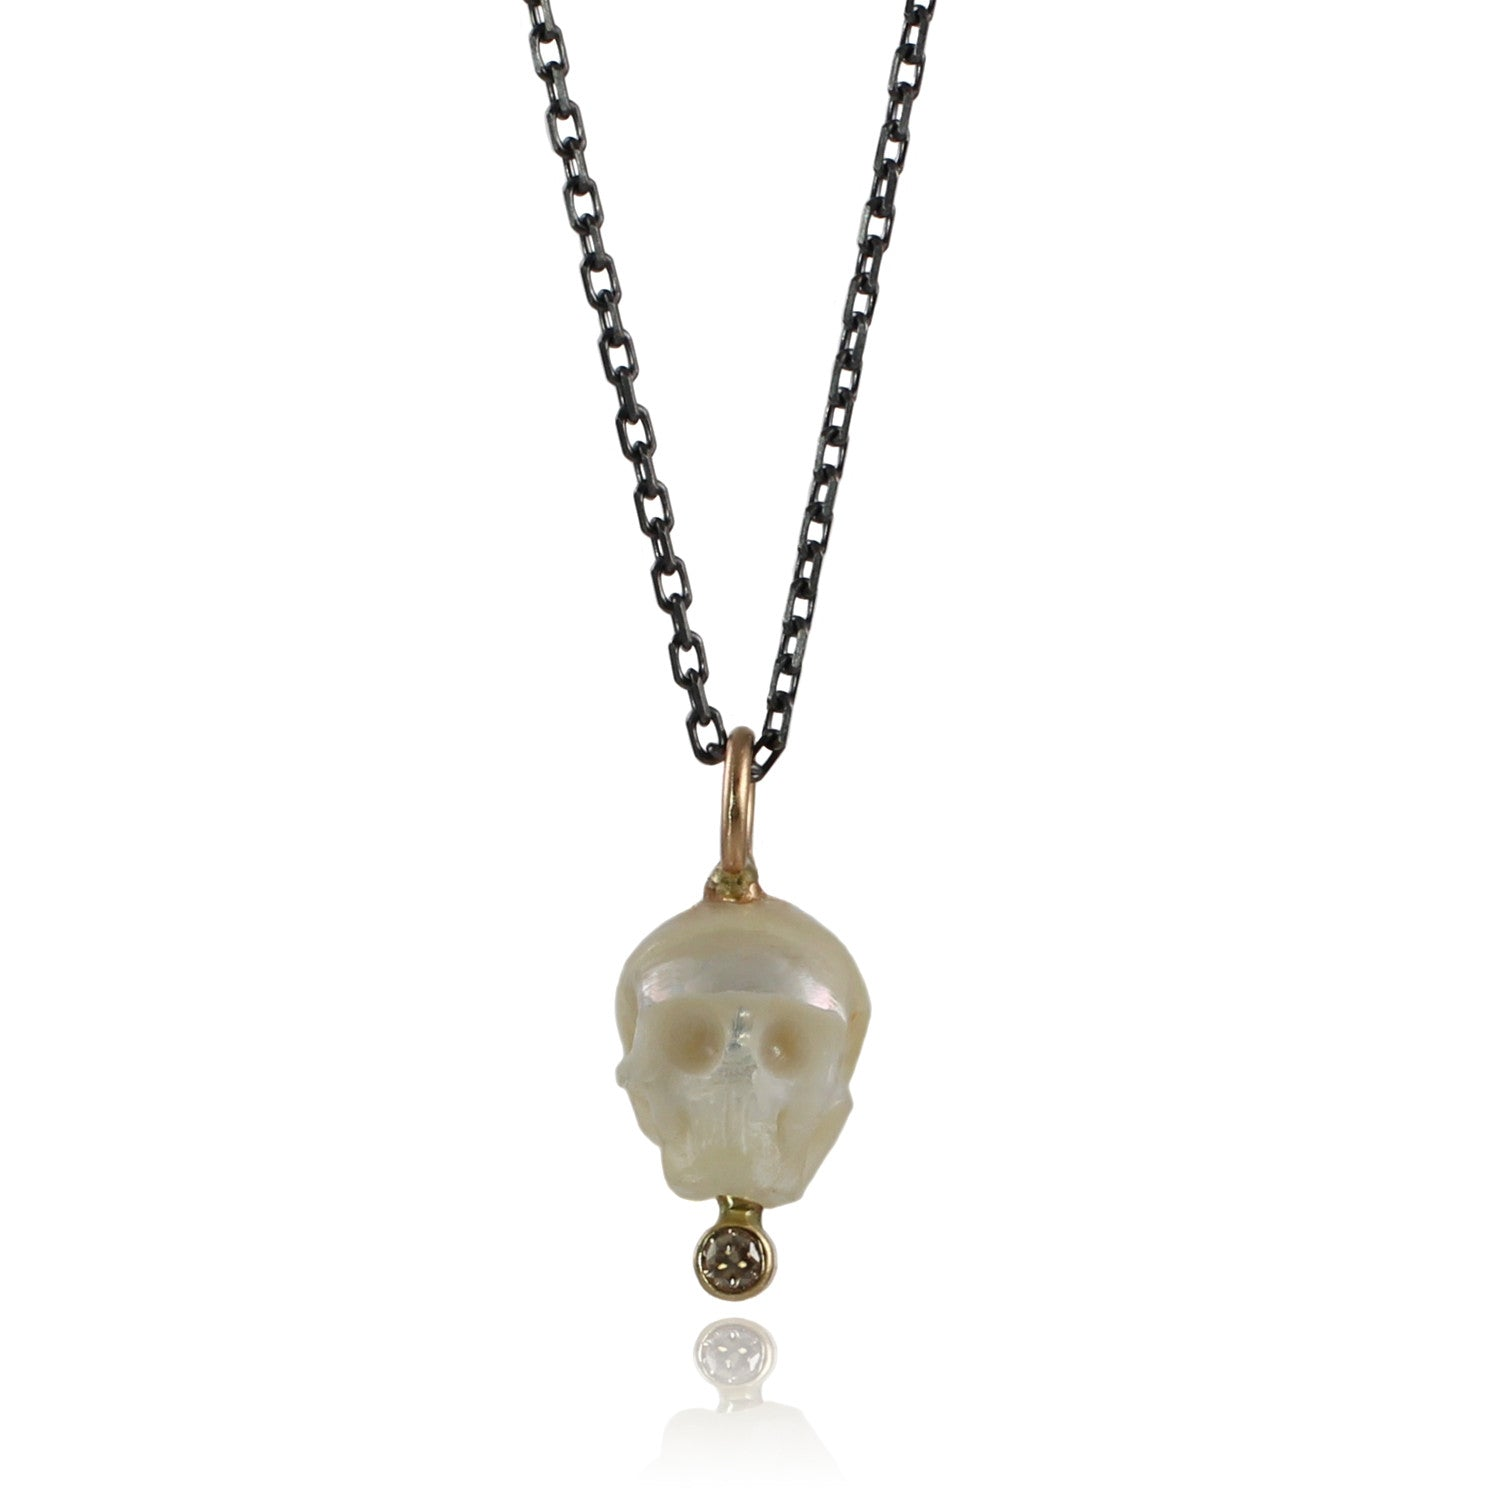 Pearl Memento Mori Necklace with Champagne Diamond